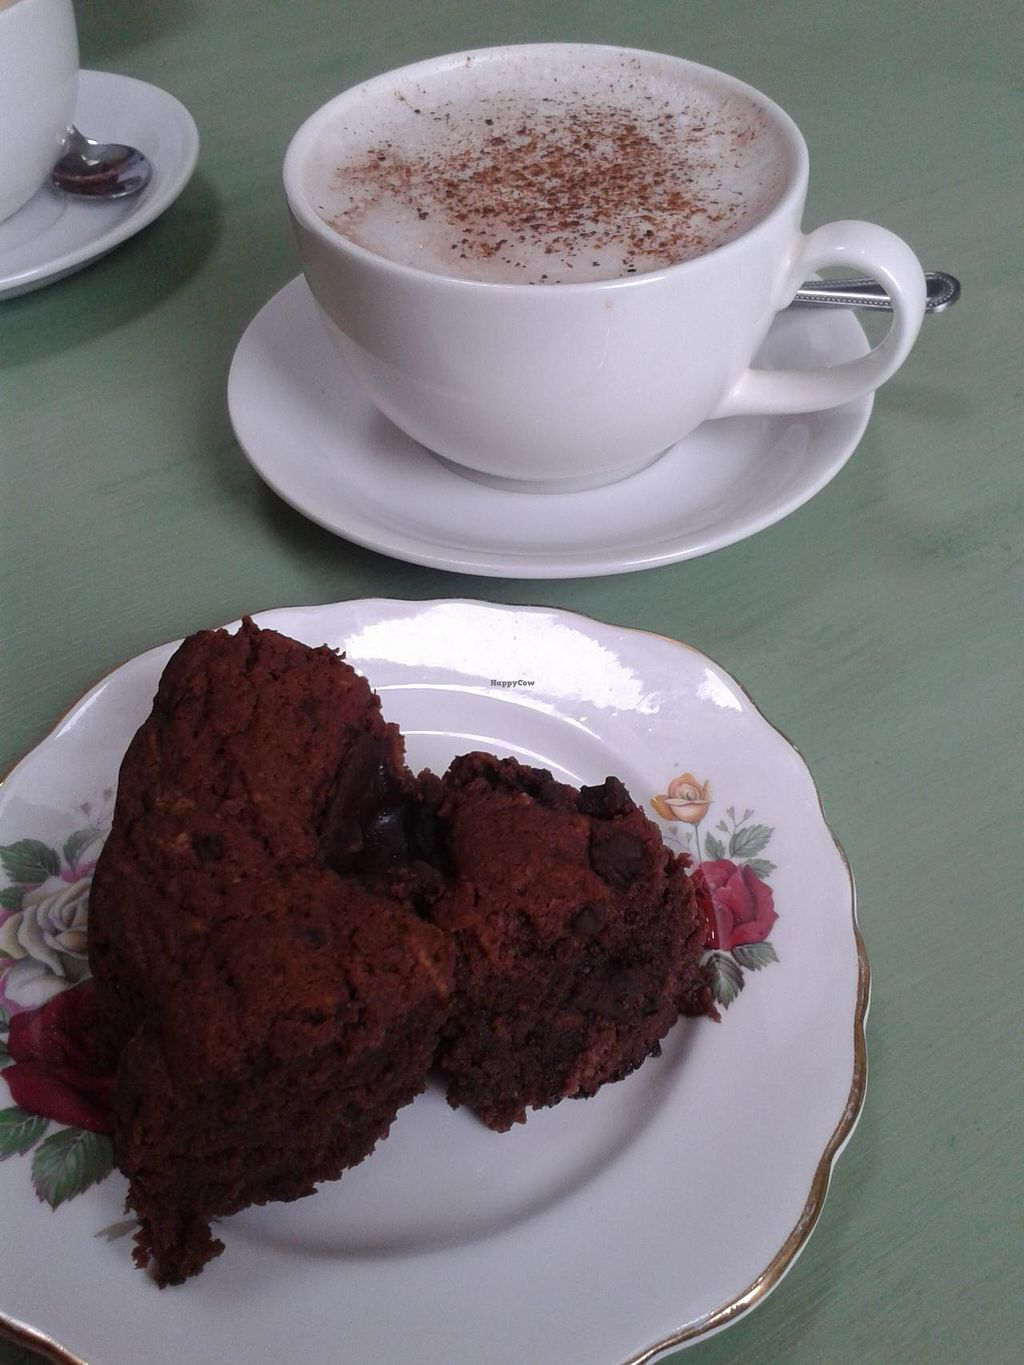 """Photo of The Hub at Healthy Spirit  by <a href=""""/members/profile/jennyc32"""">jennyc32</a> <br/>Vegan chocolate courgette cake, and almond milk hot chocolate <br/> April 28, 2015  - <a href='/contact/abuse/image/45286/100538'>Report</a>"""